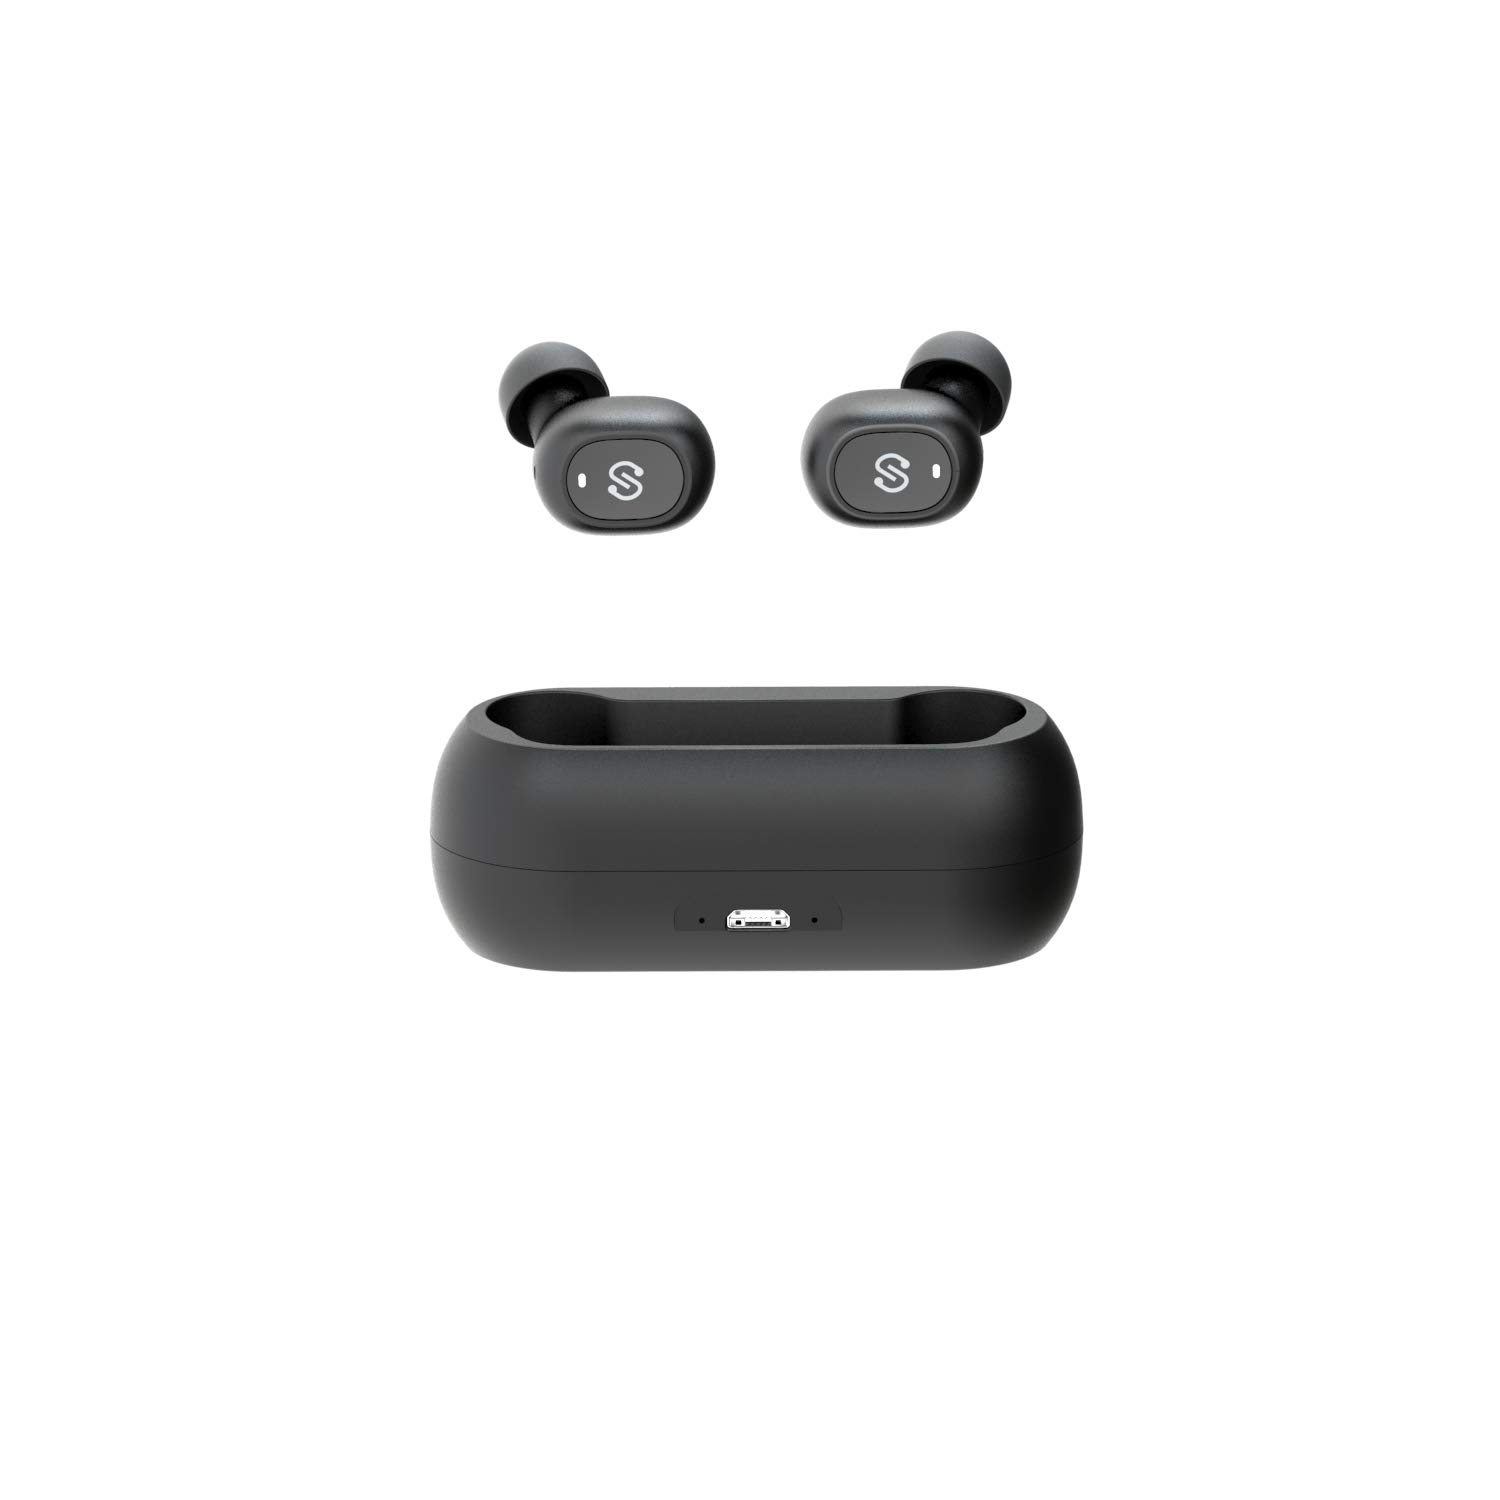 True Wireless Earbuds Bluetooth 5.0 in-Ear Stereo Bluetooth Headphones with Microphone Wireless Earphones 15 Hours Playtime, Hands-Free Calls, One-Step Pairing